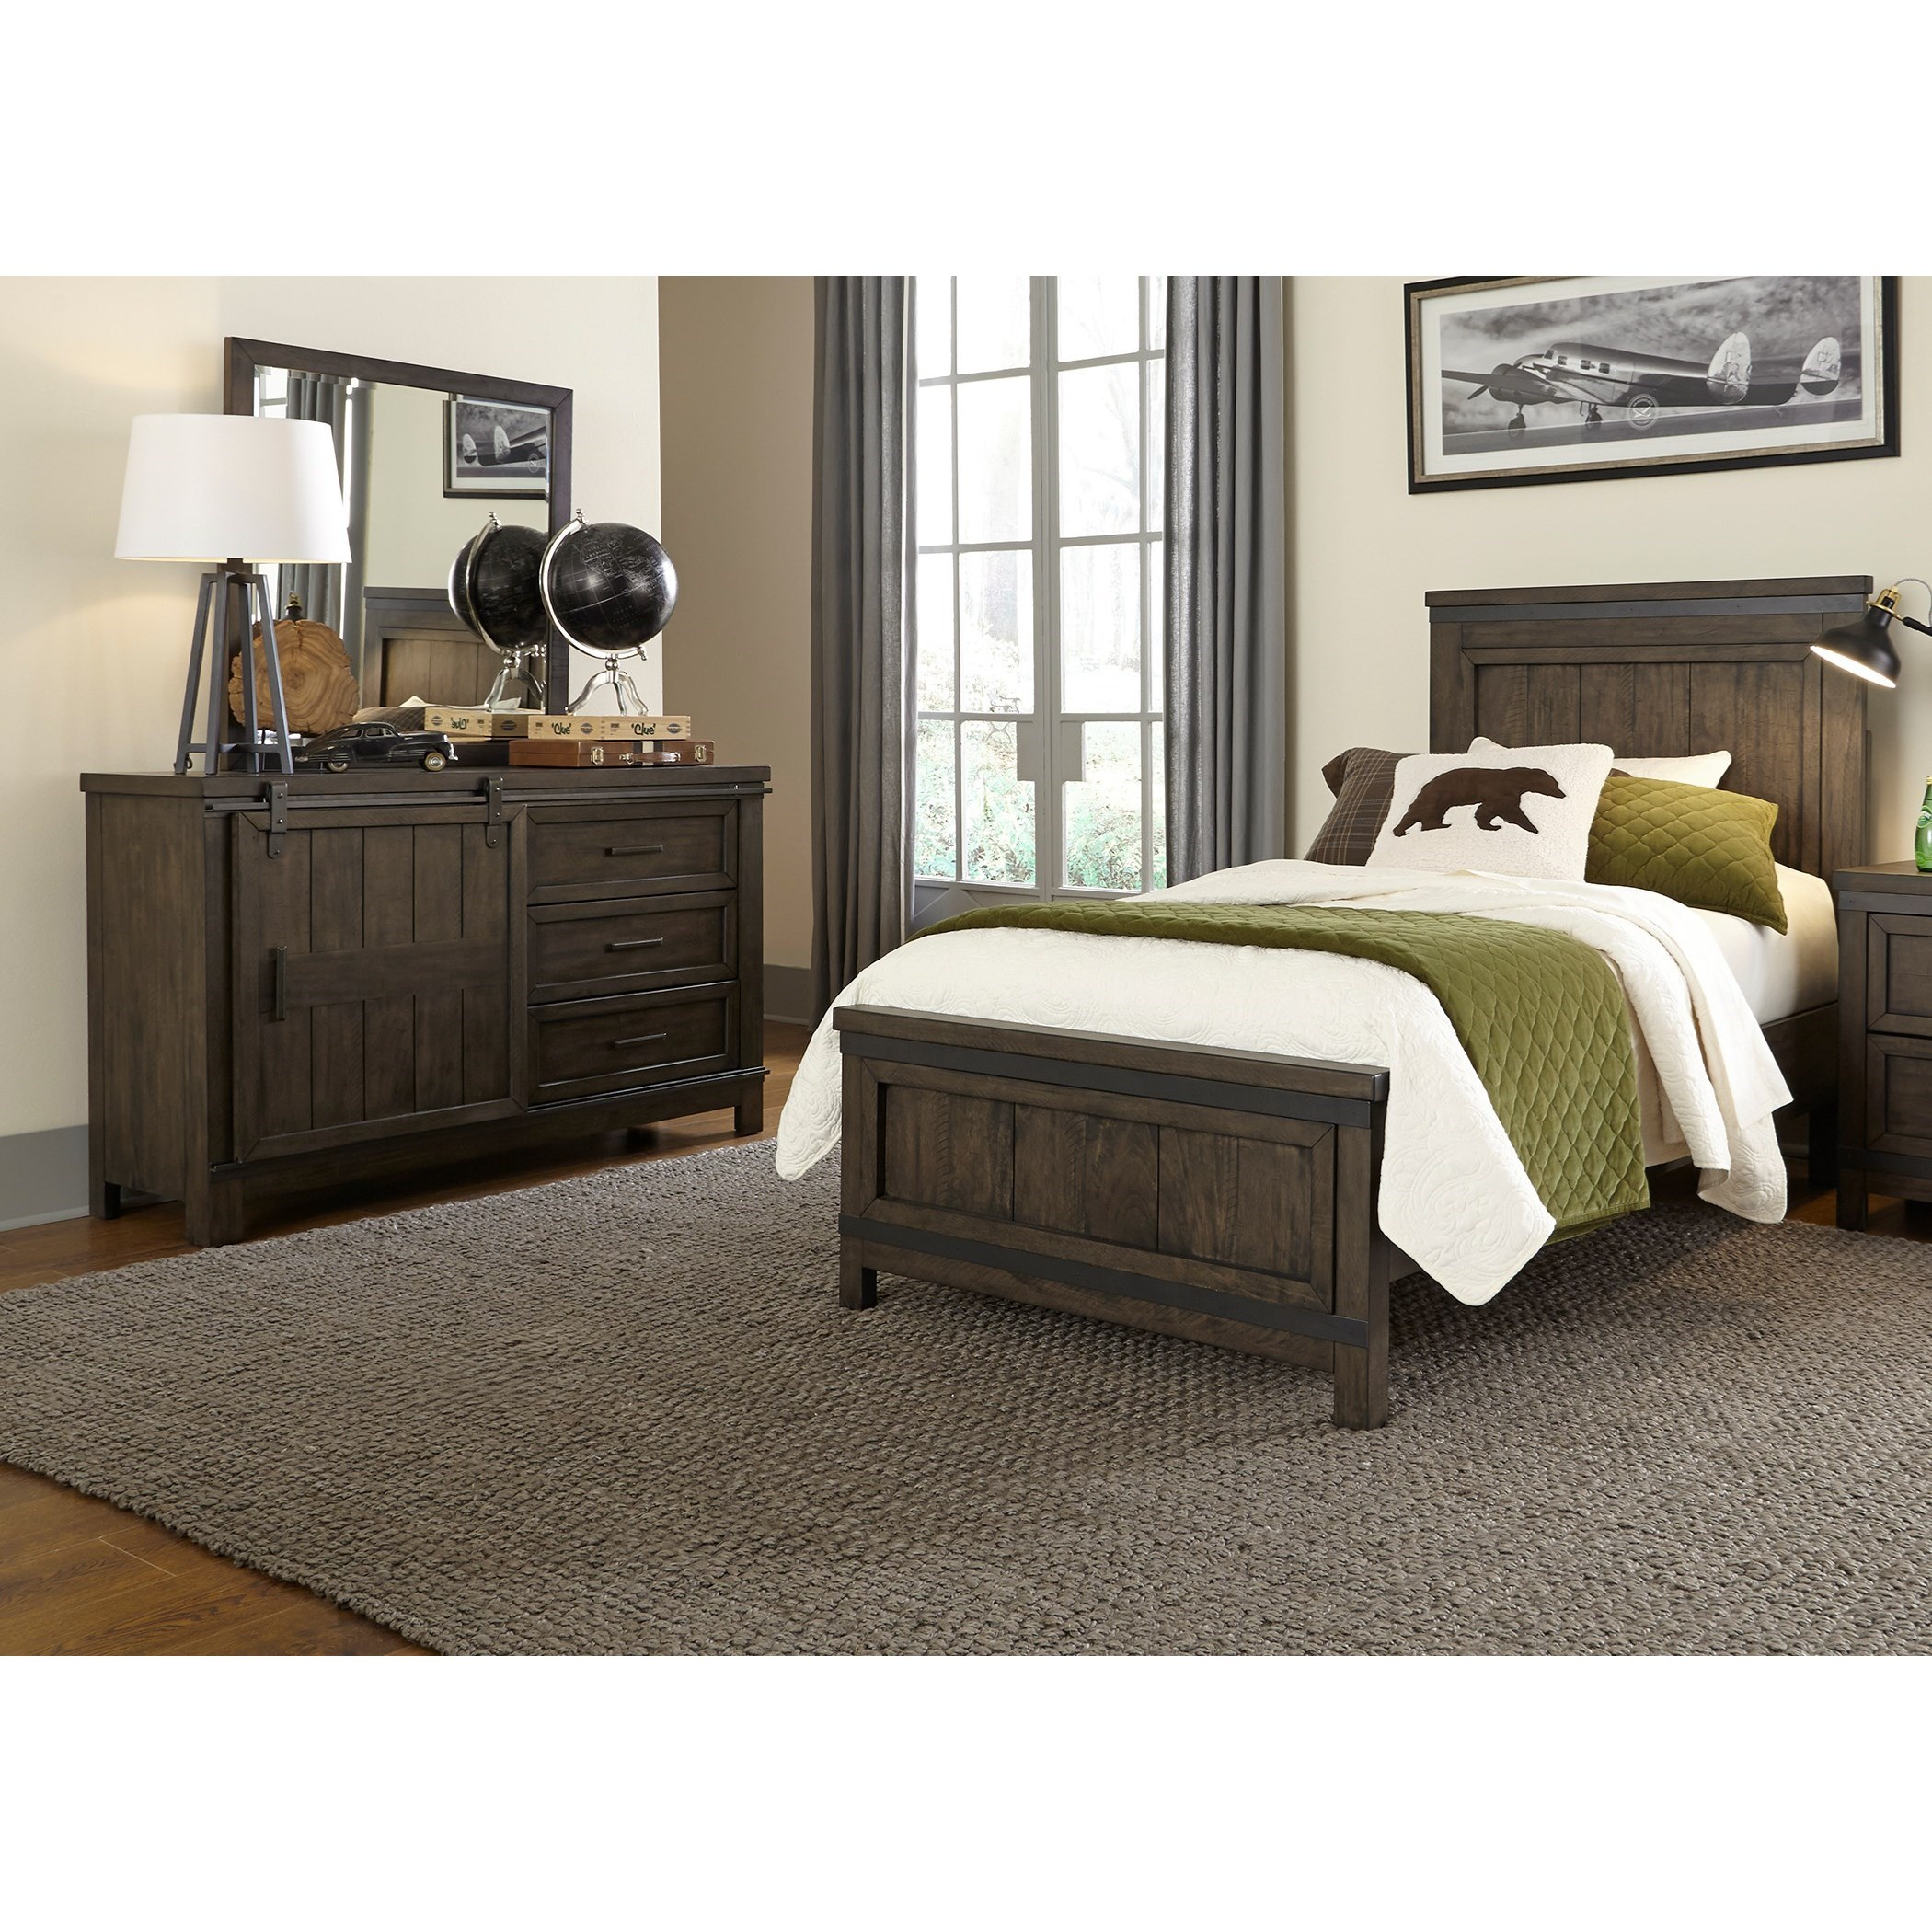 Thornwood Hills Full Bedroom Group by Libby at Walker's Furniture